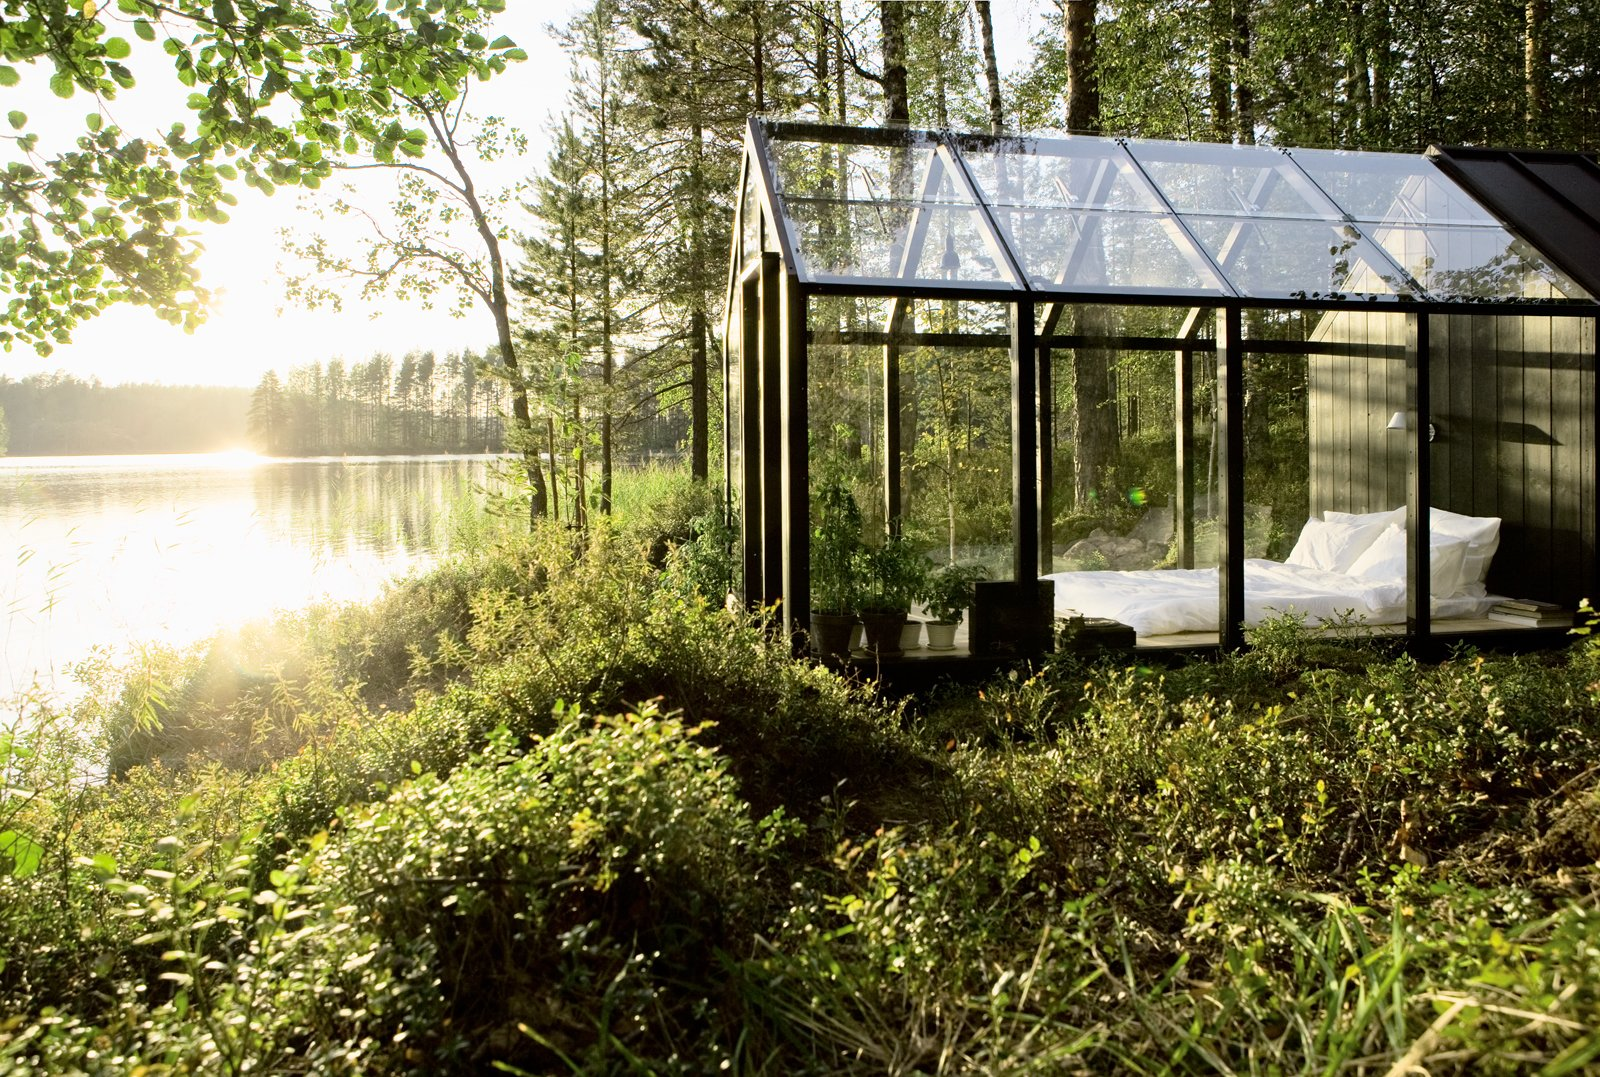 #prefab #Finland #glass #shed #bed #light #green #escape #outdoor  Off the grid by Michela O'Connor Abrams from Cabin